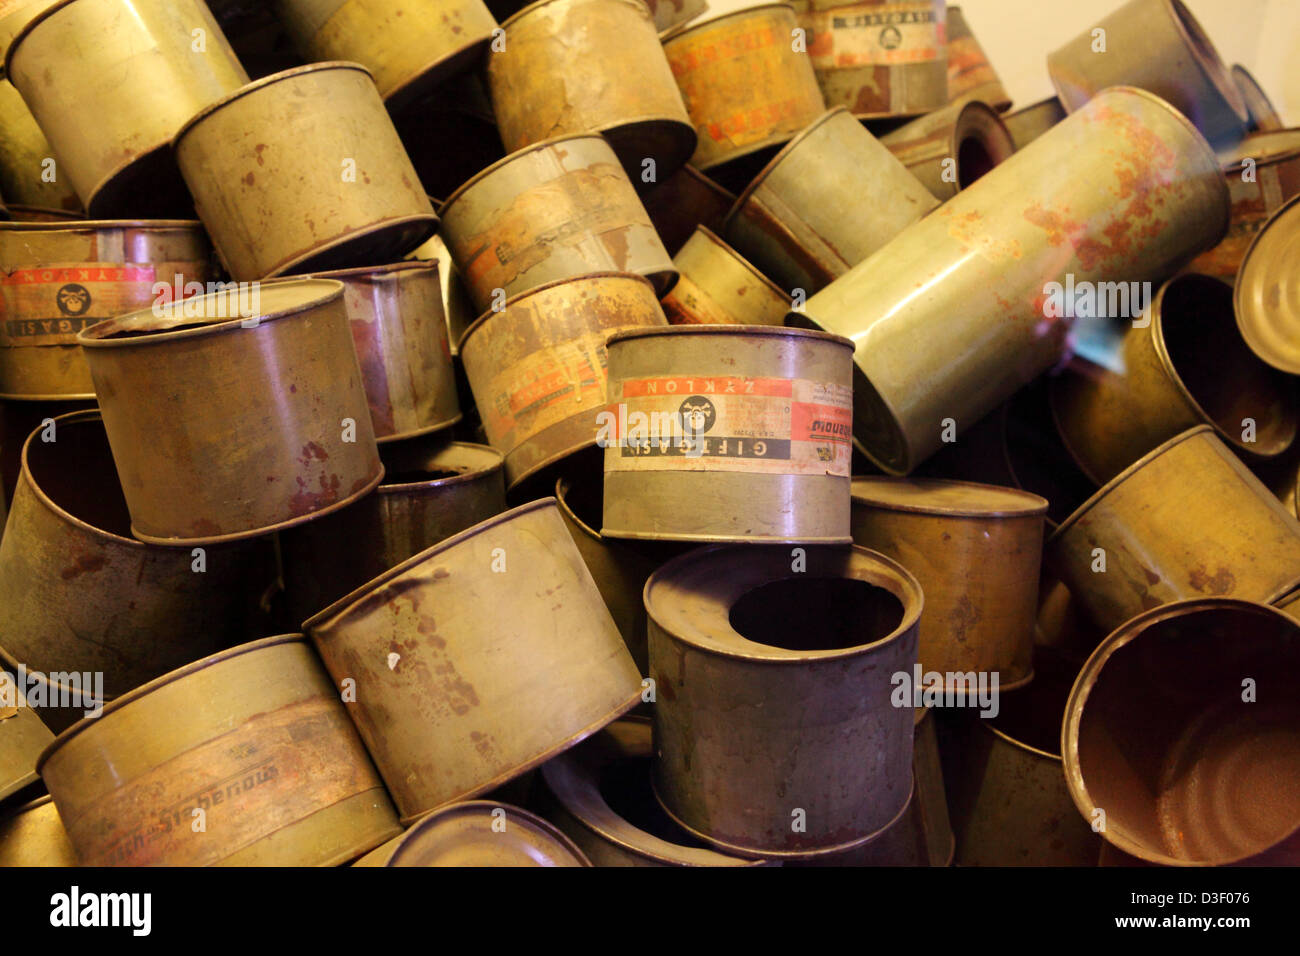 Empty cannisters of Zyclon B poison gas are displayed at Auschwitz I concentration camp. - Stock Image